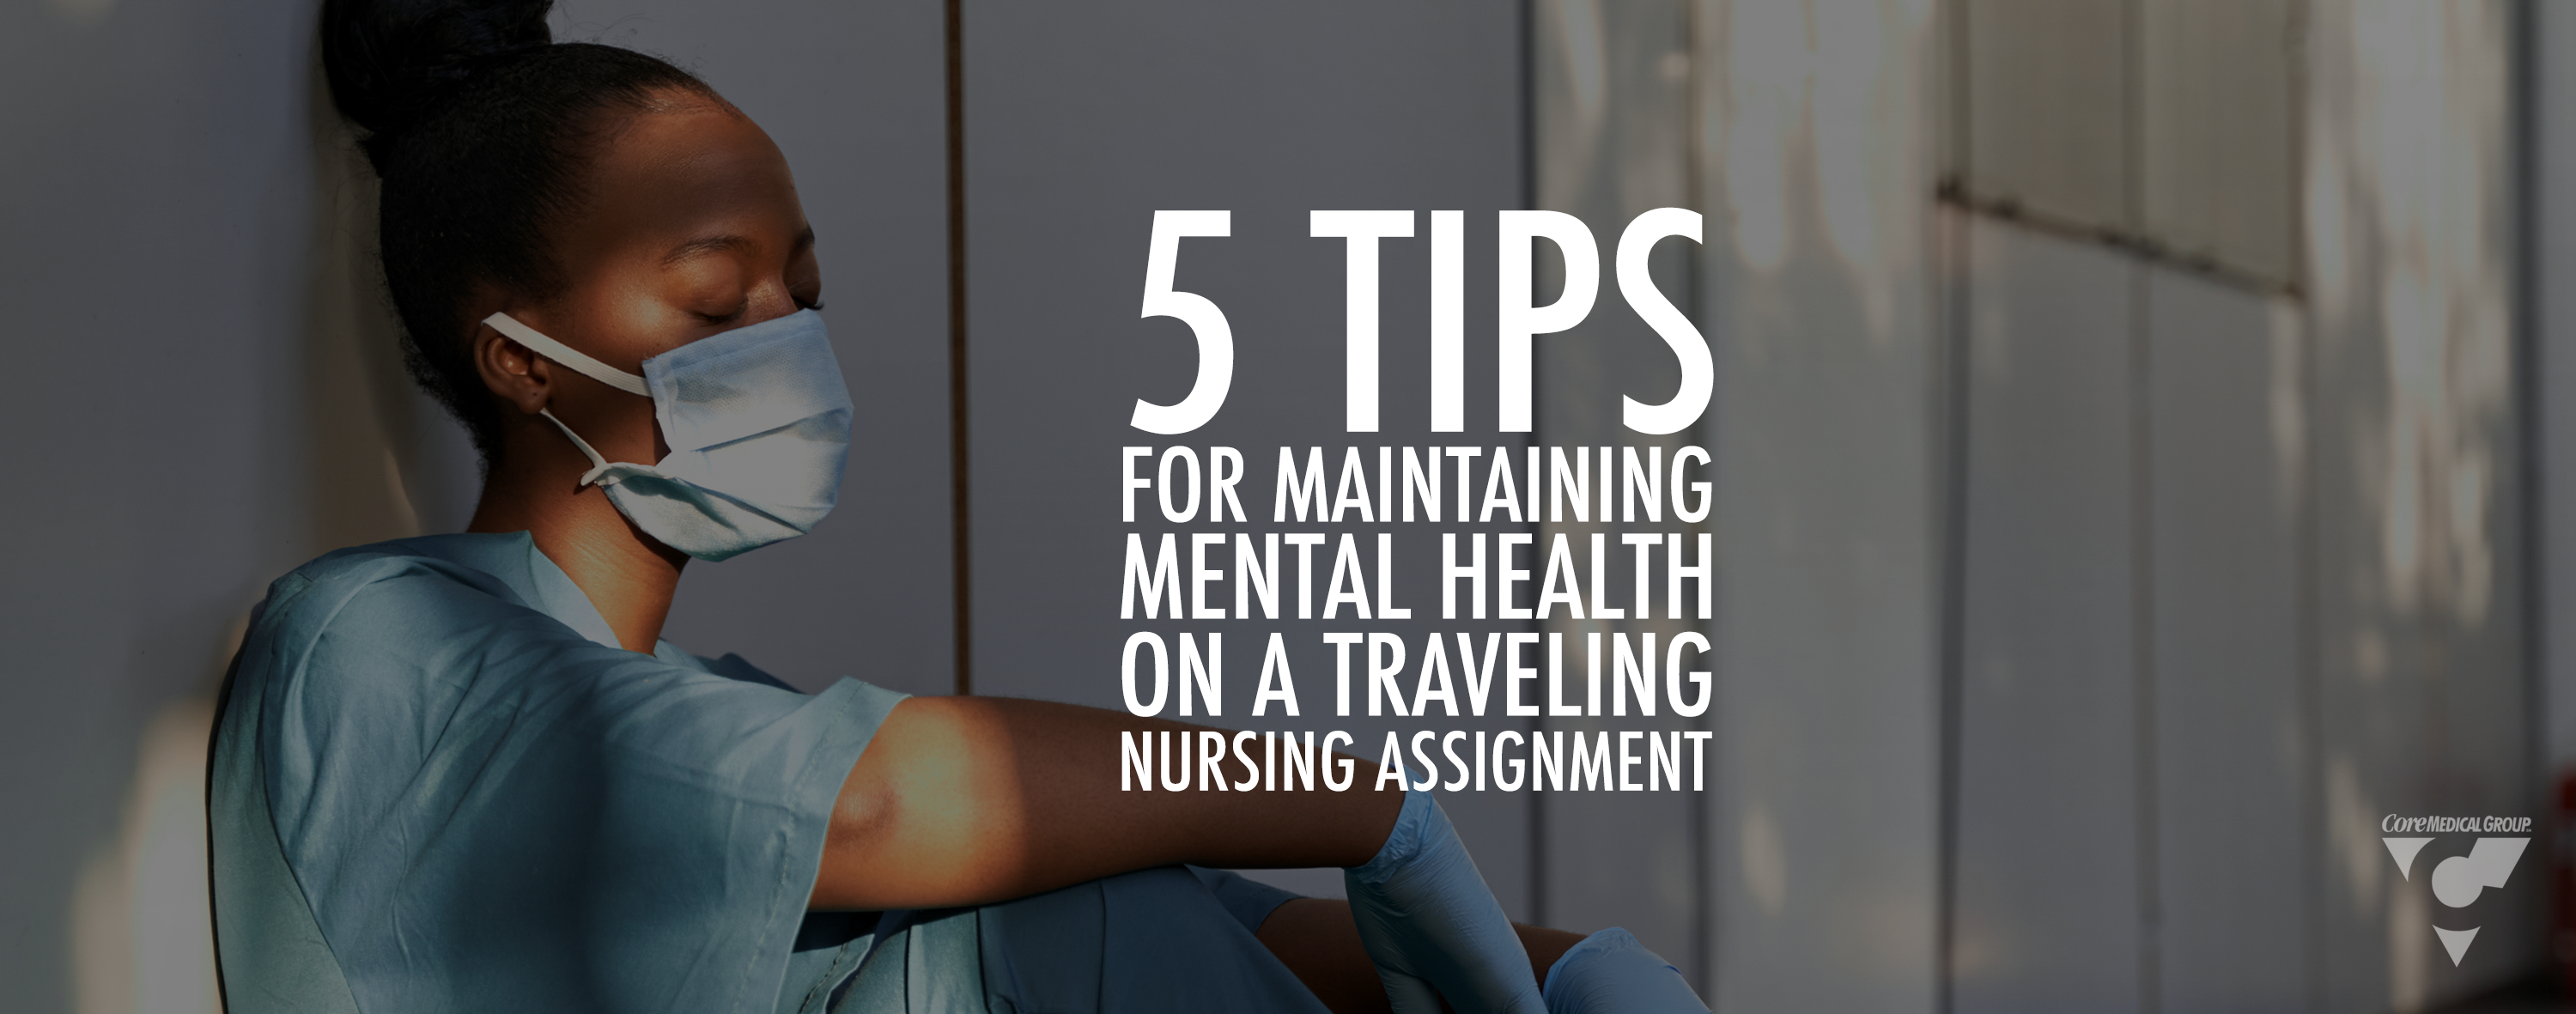 5 Tips for Maintaining Mental Health on a Travel Nursing Assignment